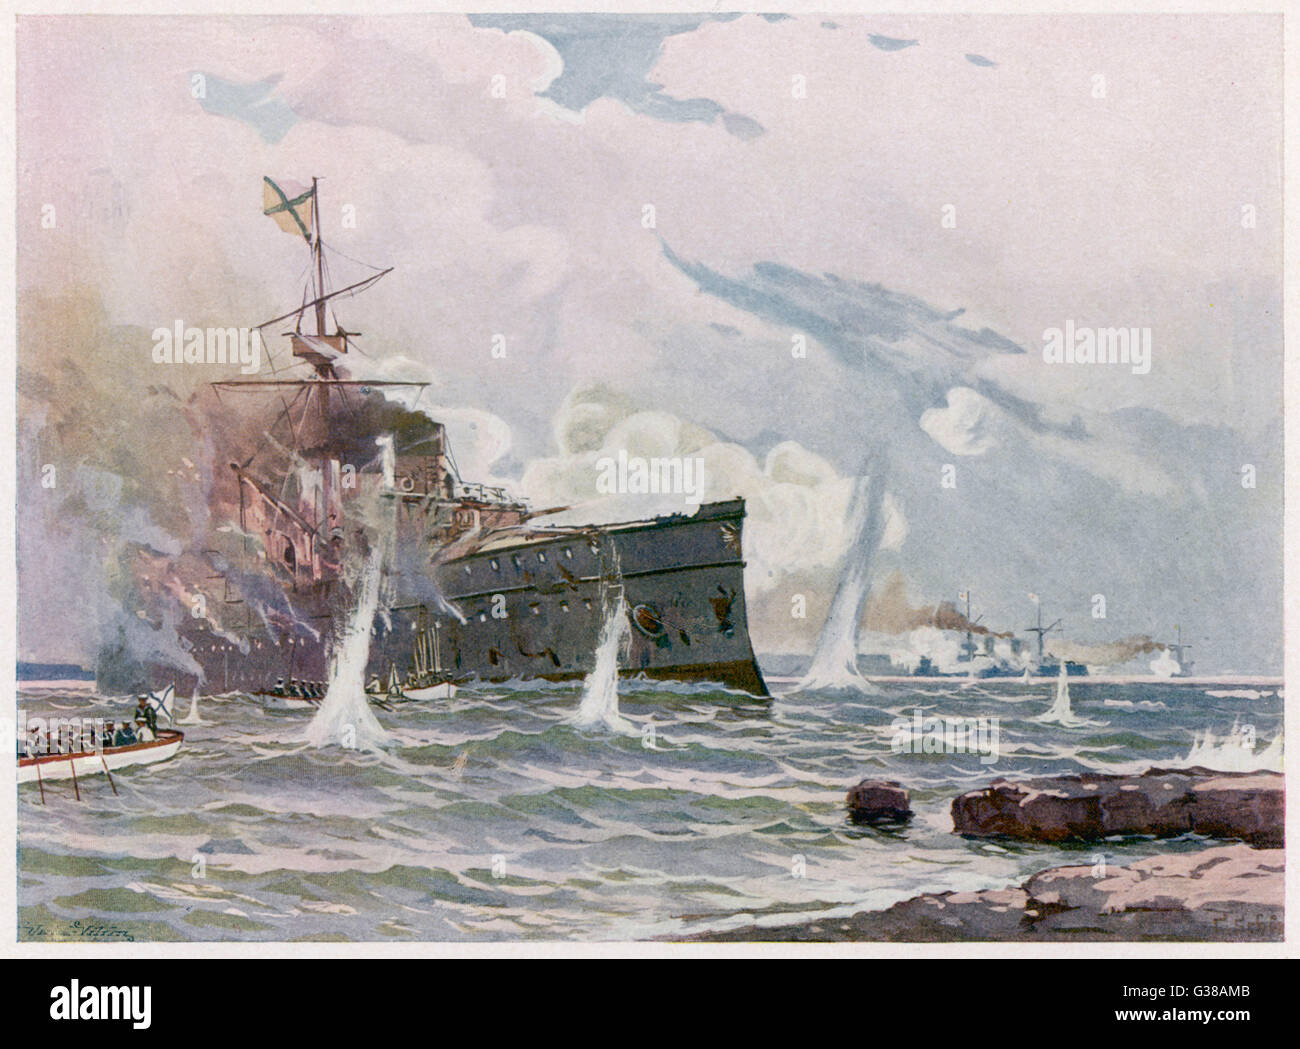 The Russian cruiser 'Novik' is  sunk by the Japanese cruiser  'Tschitole'        Date: 1904 - Stock Image